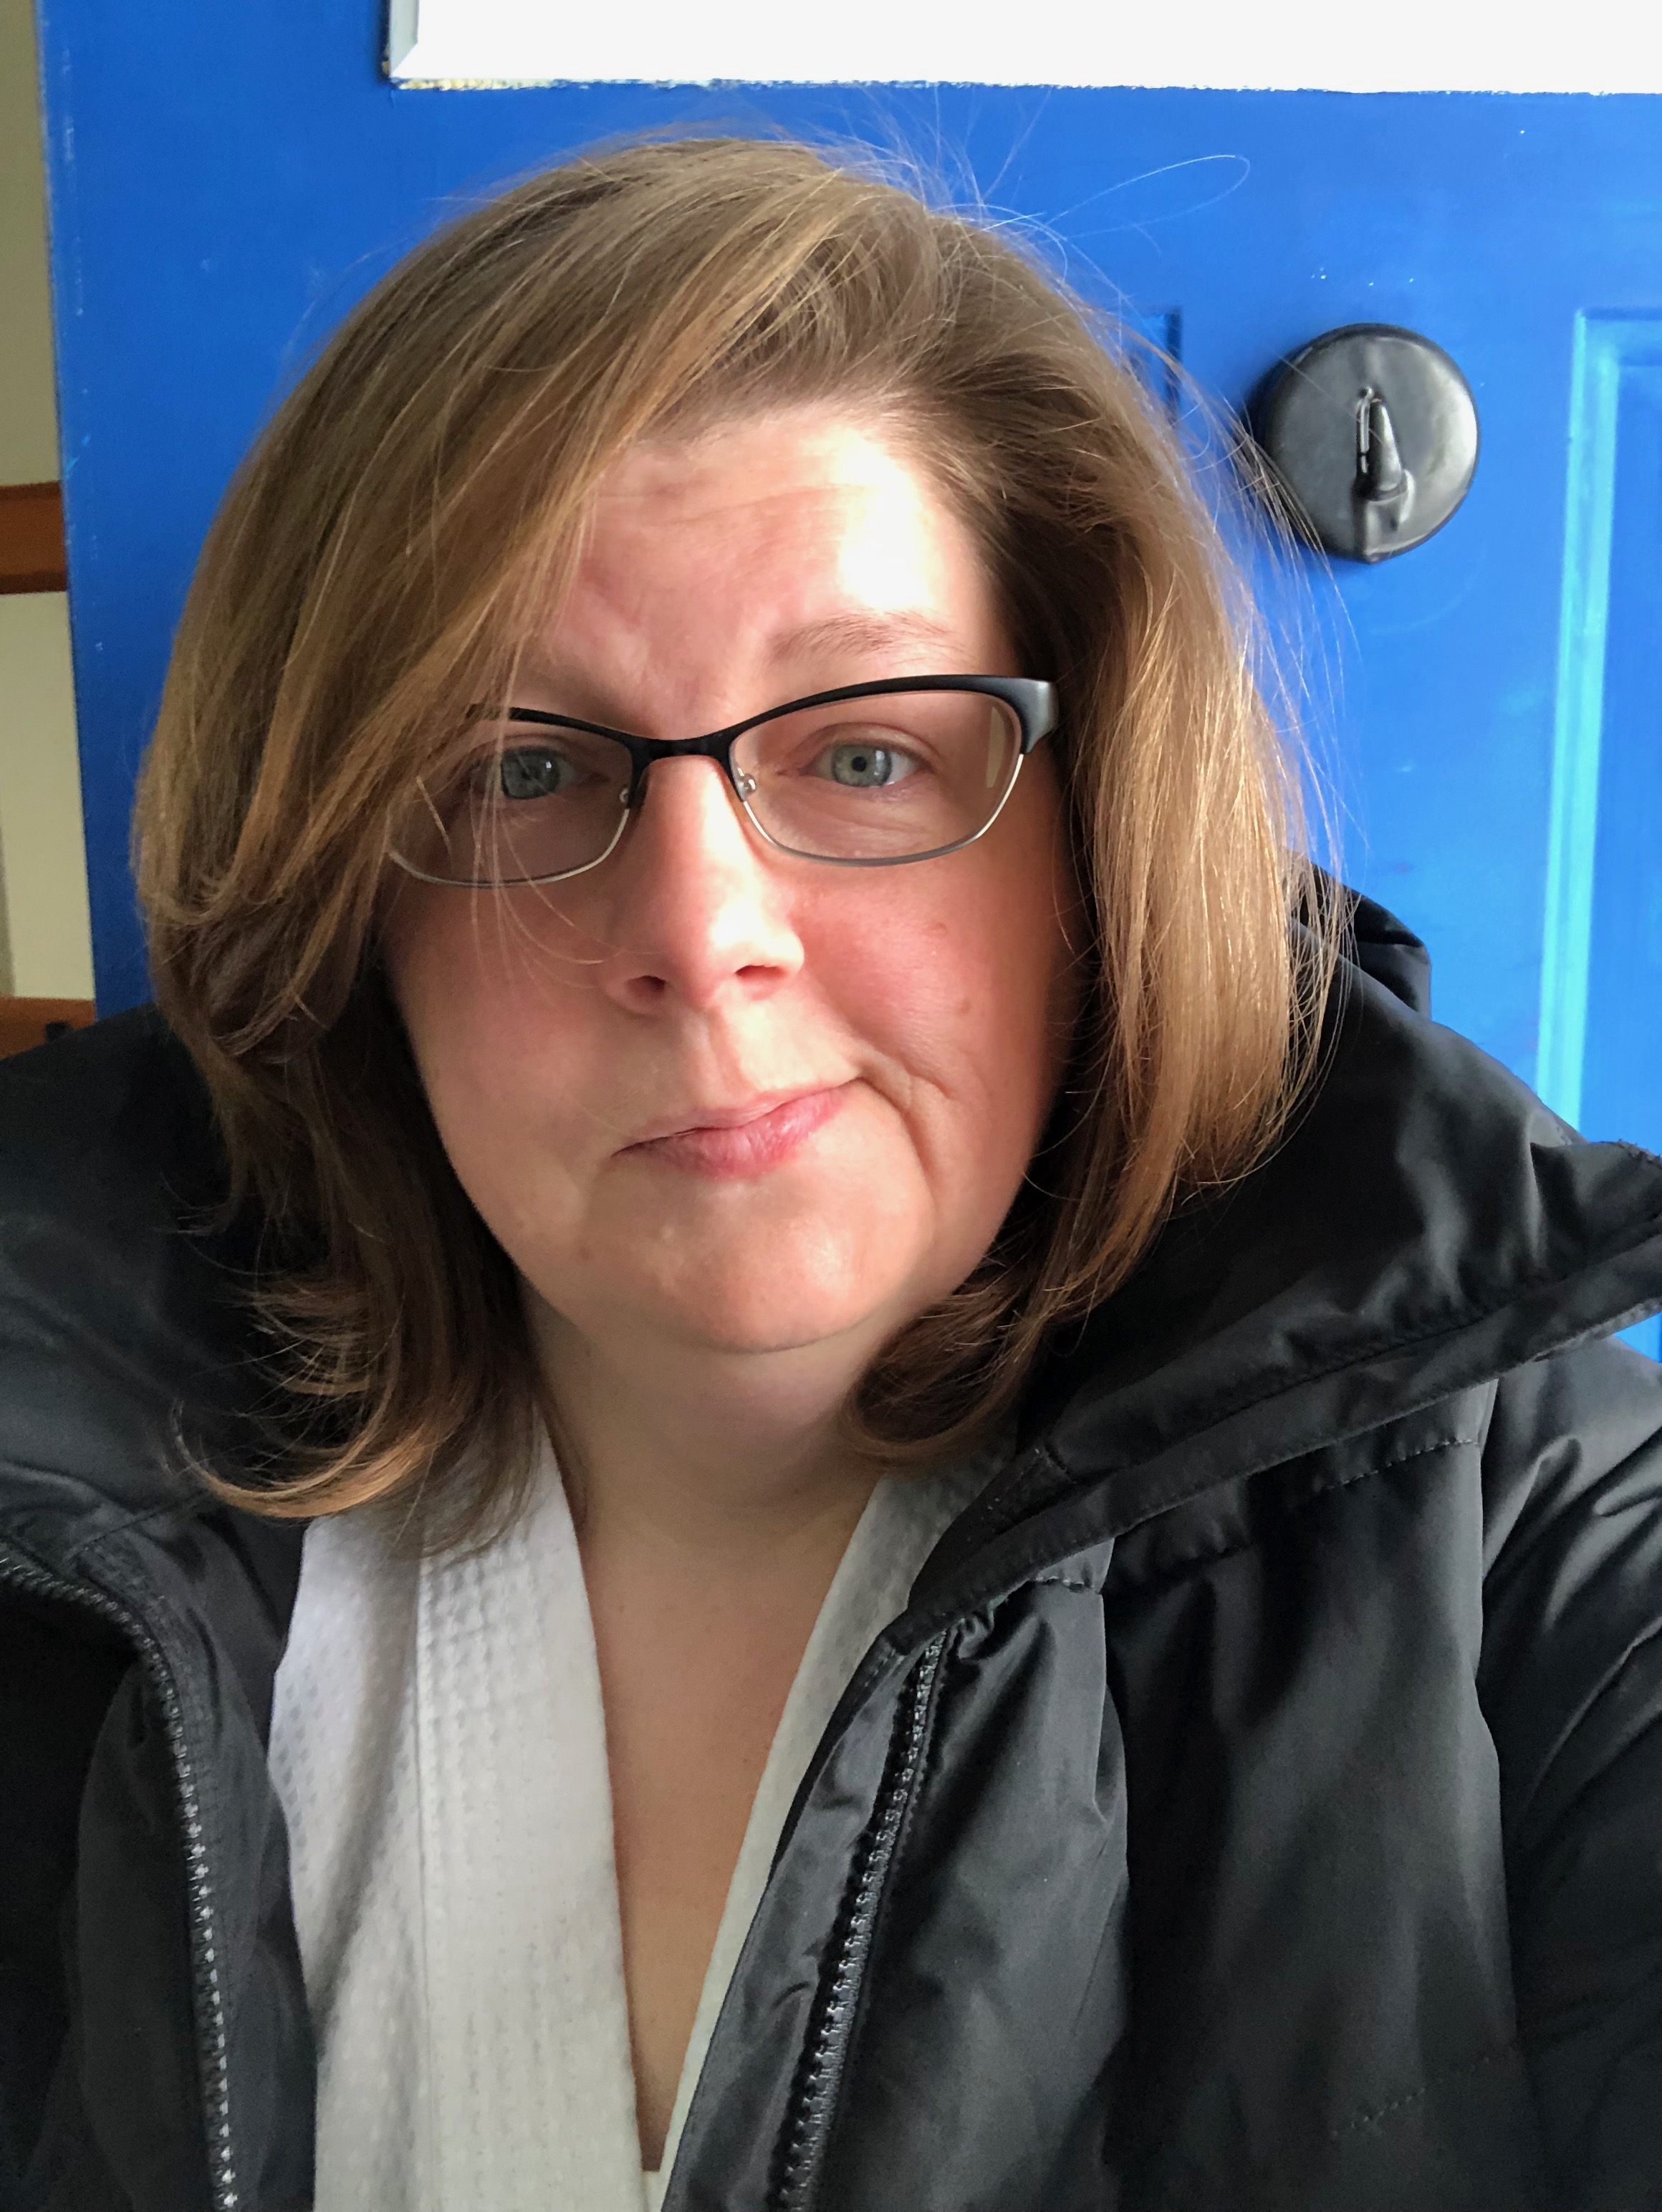 The author, a woman in her mid-forties with light brown shoulder length hair, is wearing glasses,  a black coat, and a white shirt. She is standing in front of a blue door and she looks nervous.